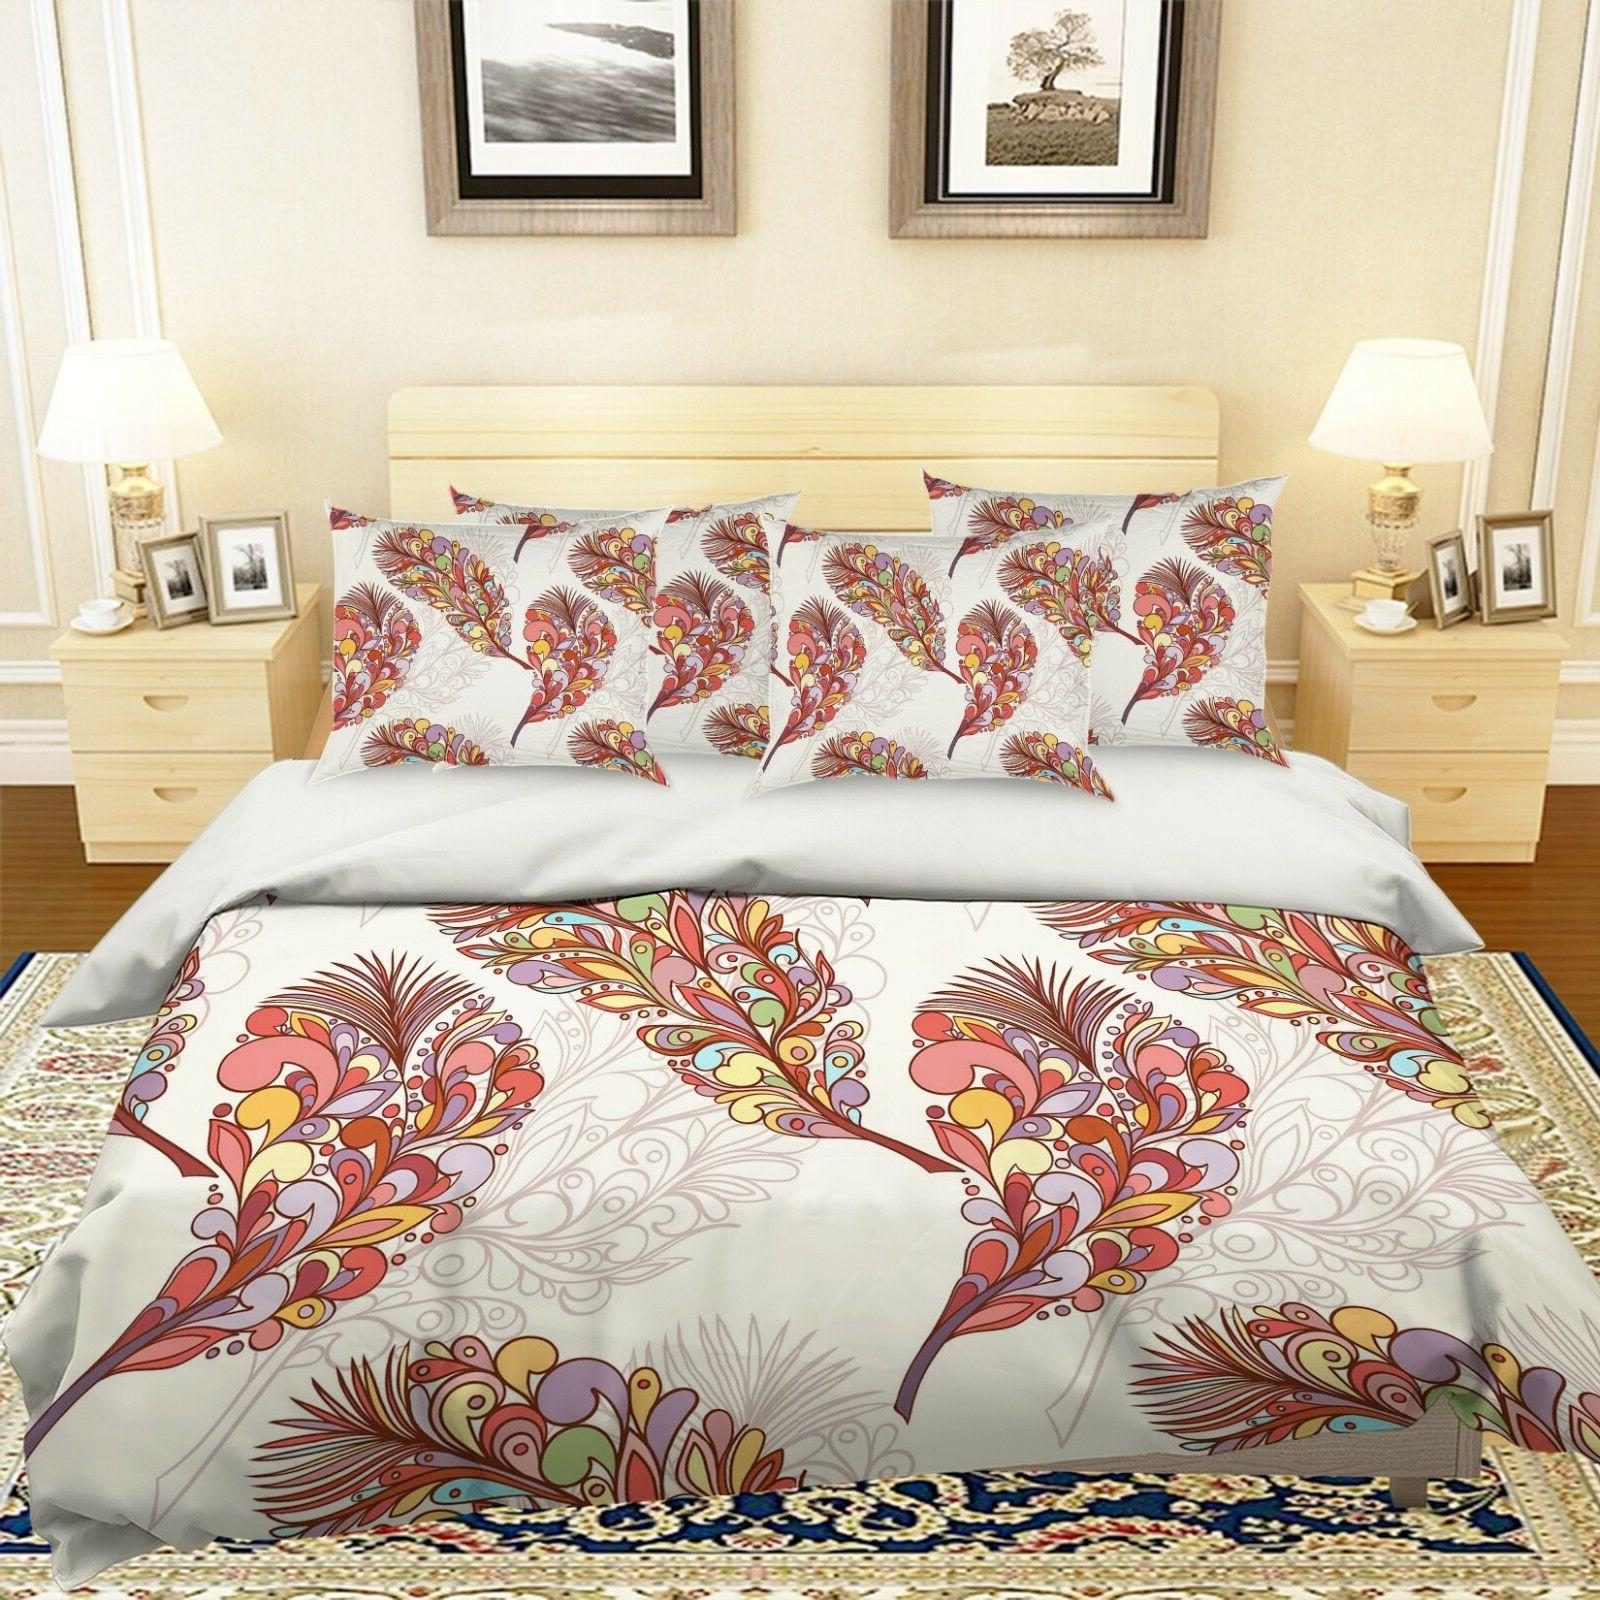 3d plumage pattern 26 bed pillowcases quilt